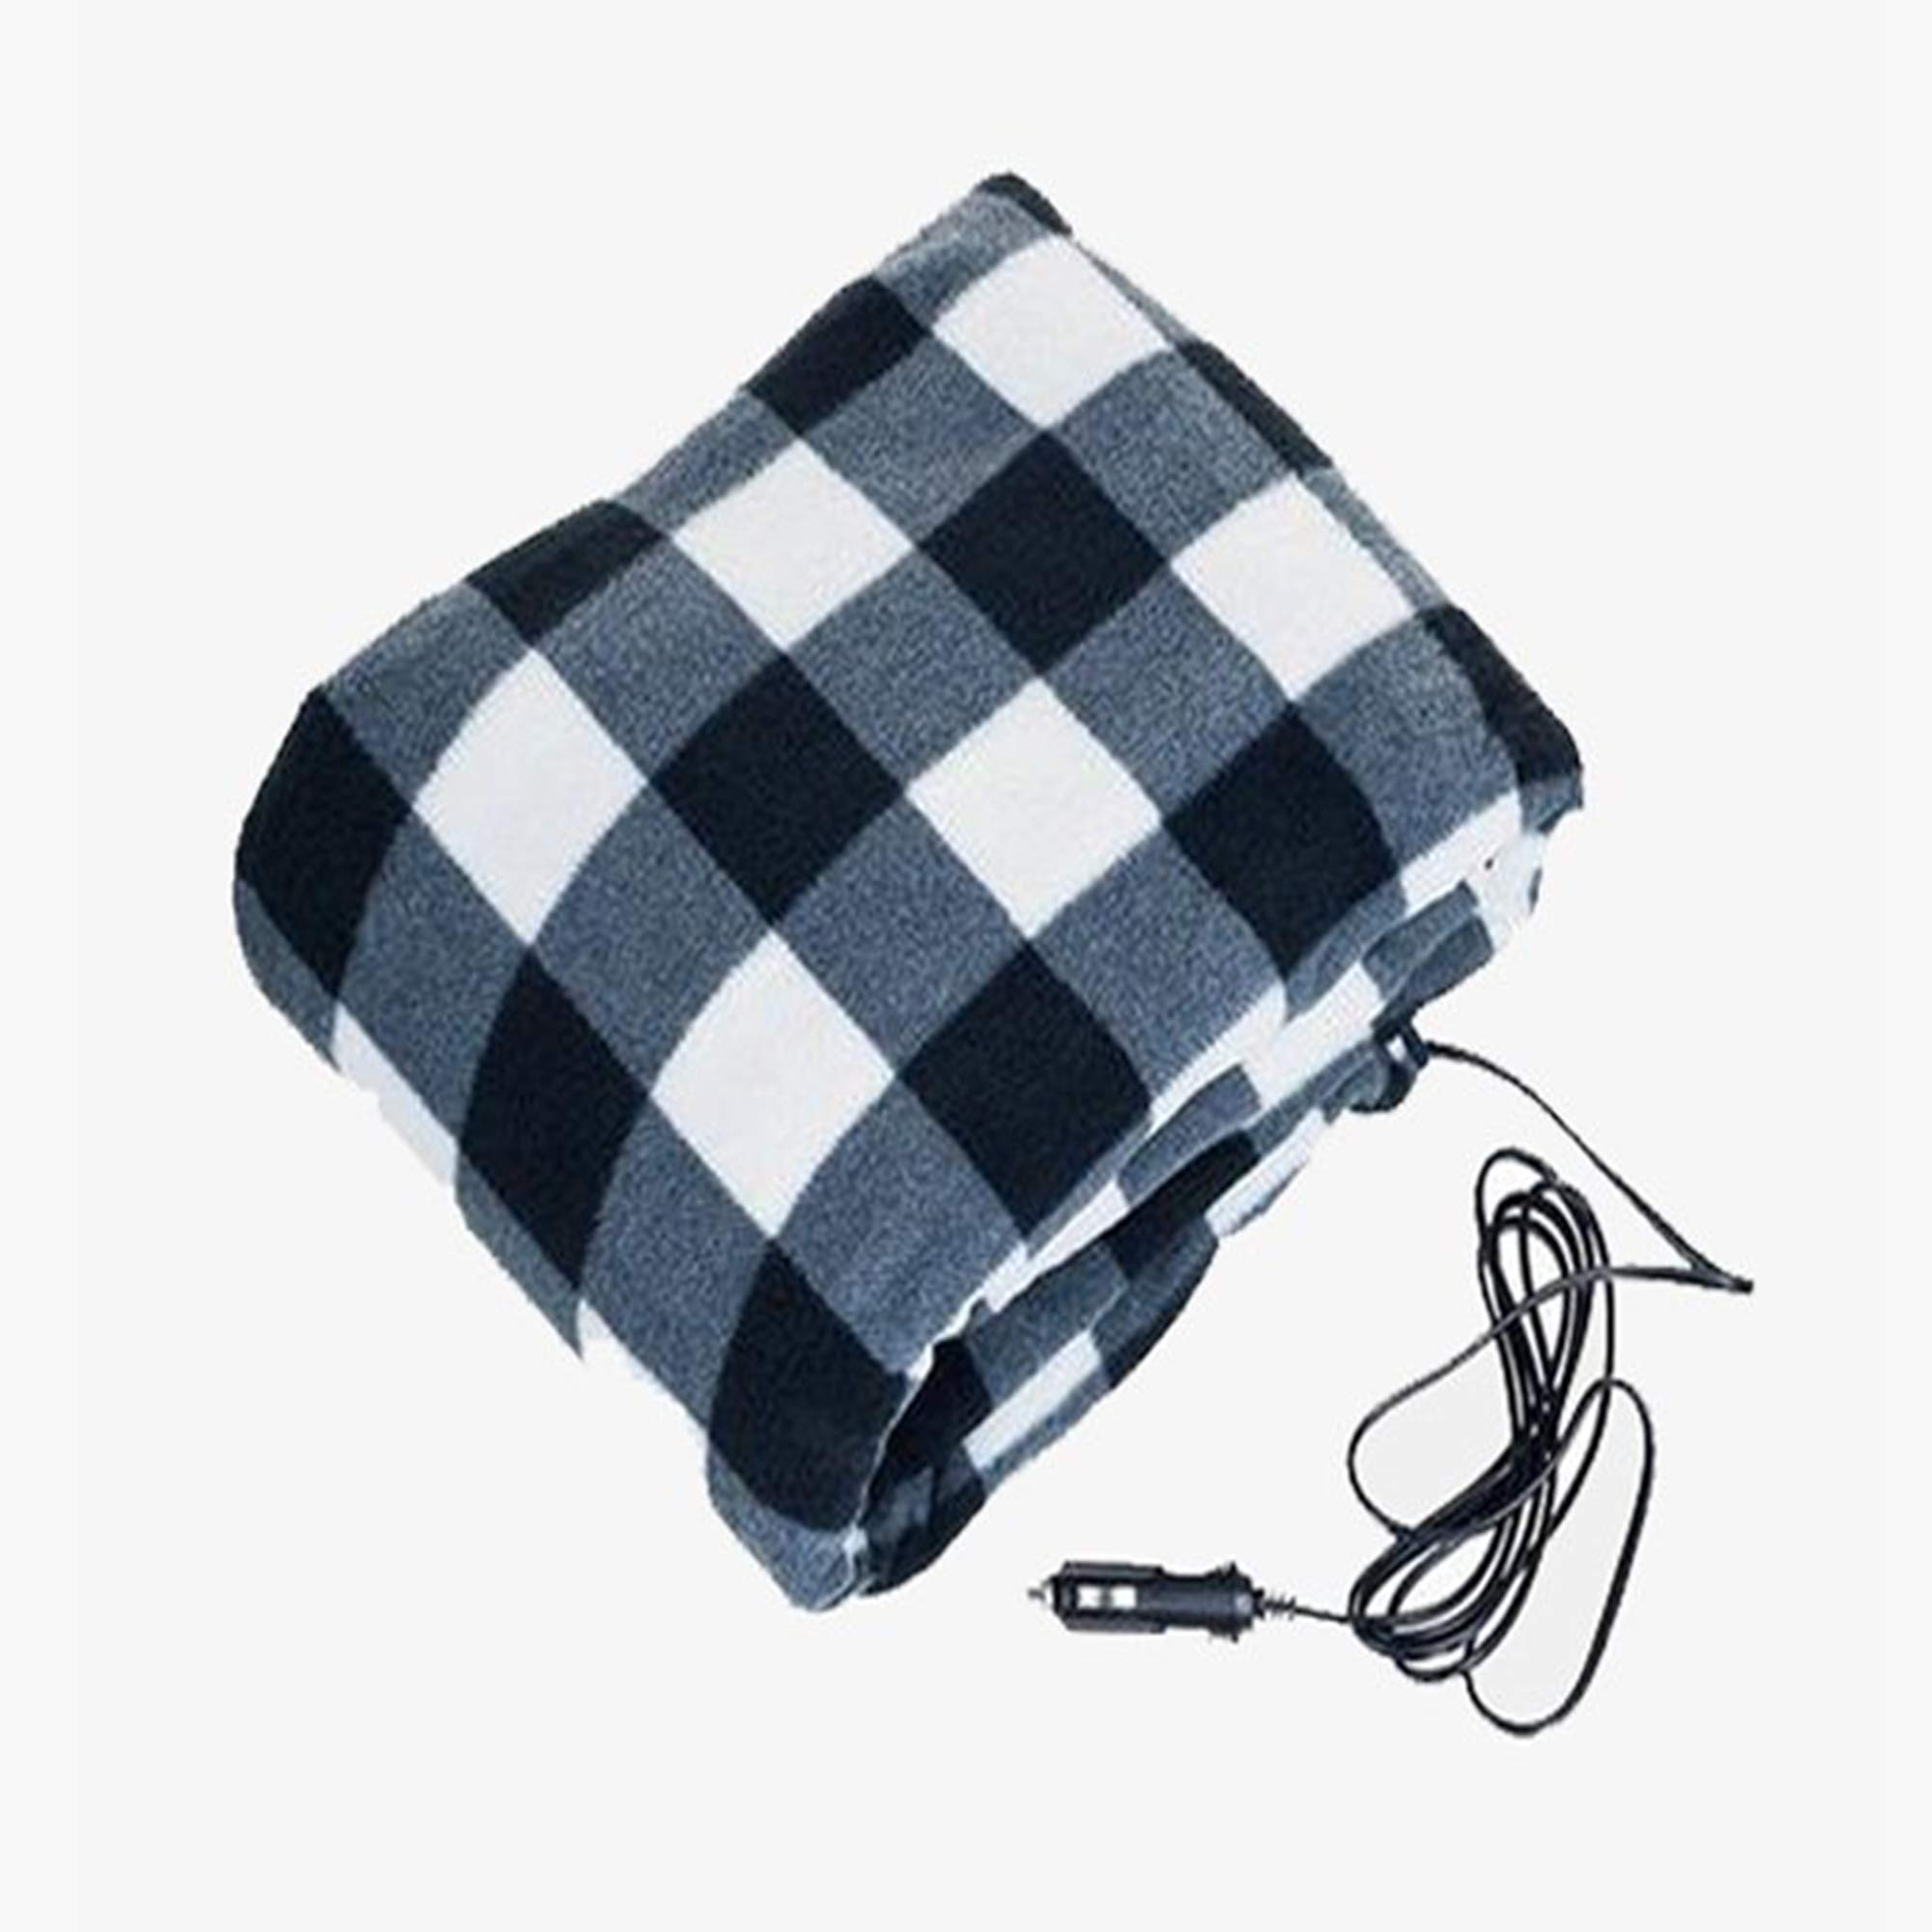 Electric Heating Blanket for Vehicles 12 Volt Travel Throw for Car|Winter Hot Car Constant Temperature Heating Blanket for Travel Camping Picnic (Plaid) by FreeShip Deals